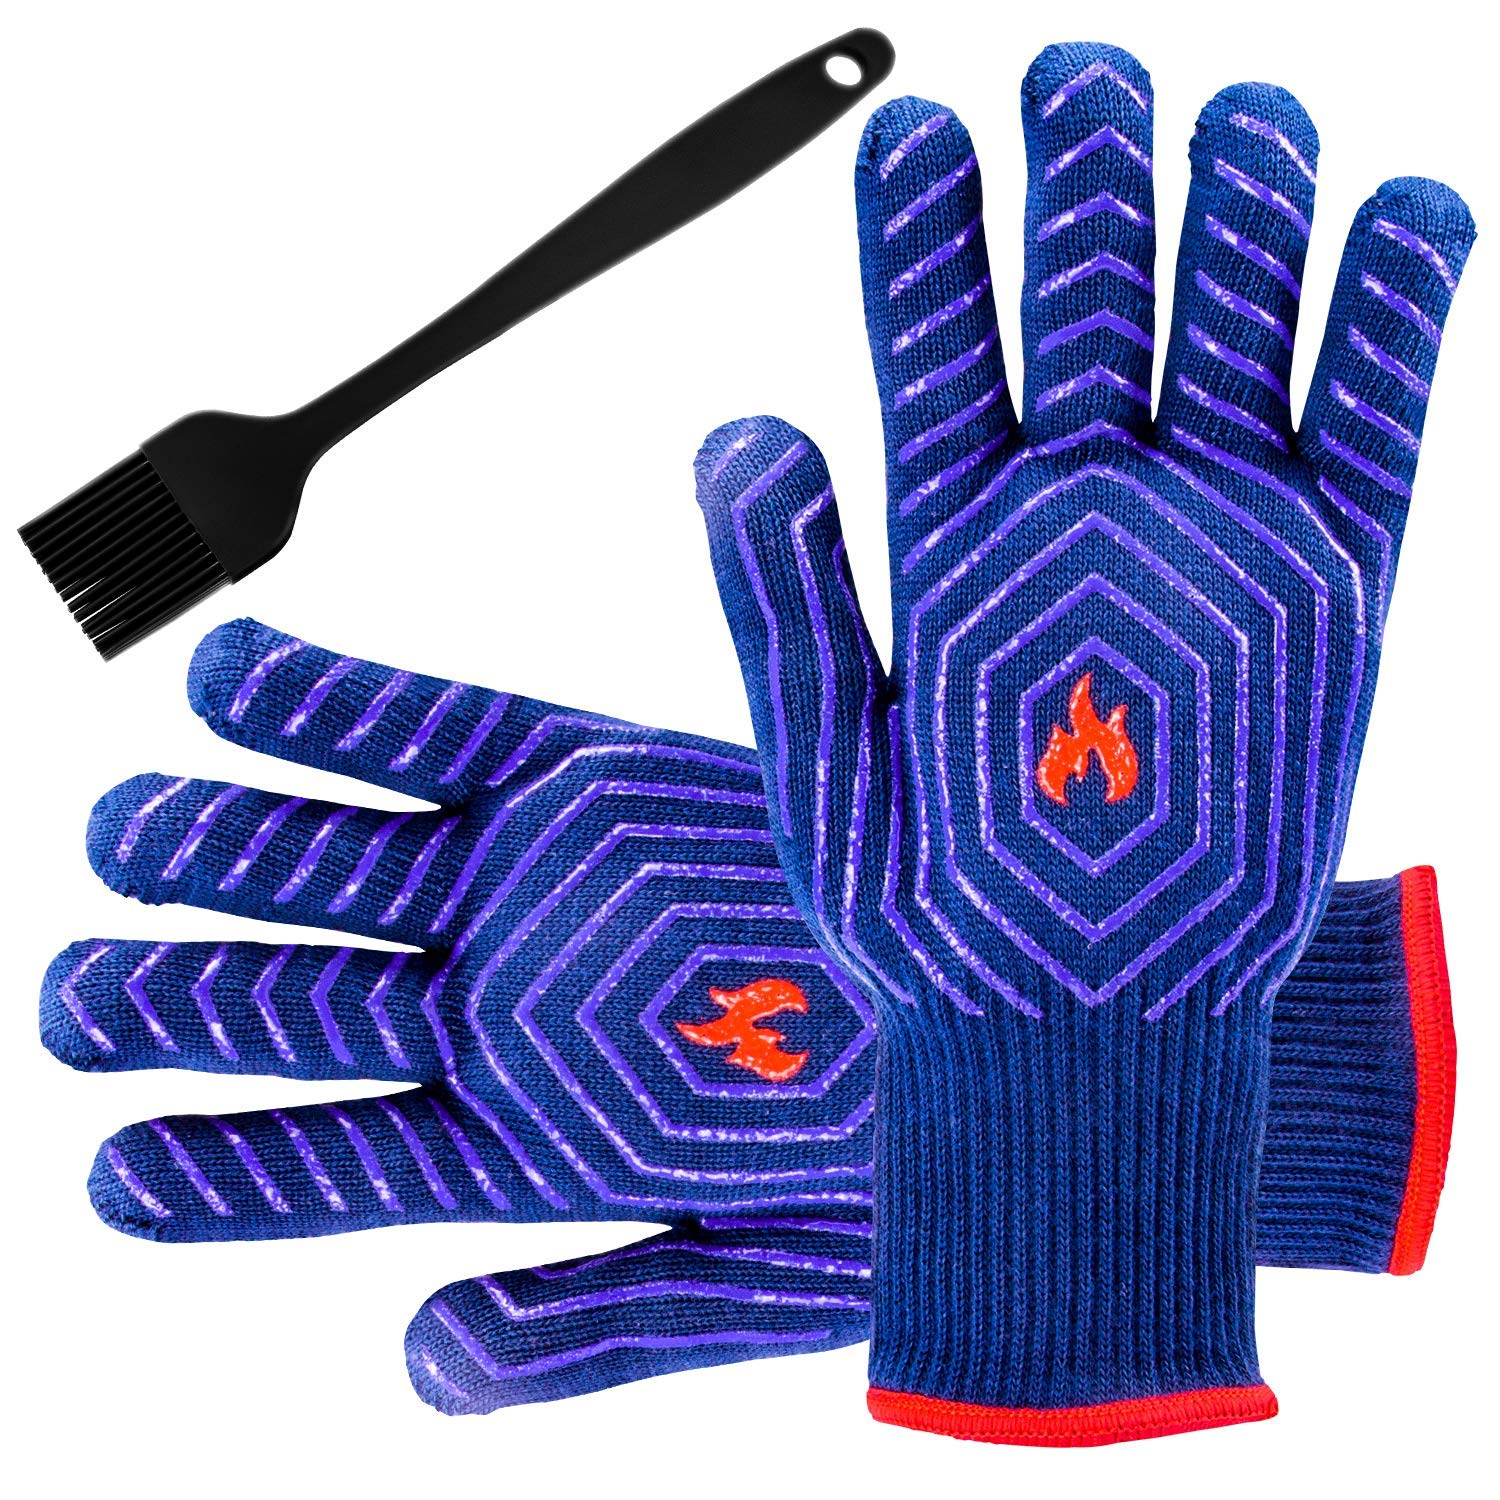 BBQ Grilling Gloves Barbecue Grill Gloves BBQ Oven Mitt Oven Gloves 932°F Heat Resistant Heavy Duty Cotton Cooking Gloves Silicone Insulated for Smoker, Camping Fire Pit, Outdoor Baking, Kitchen